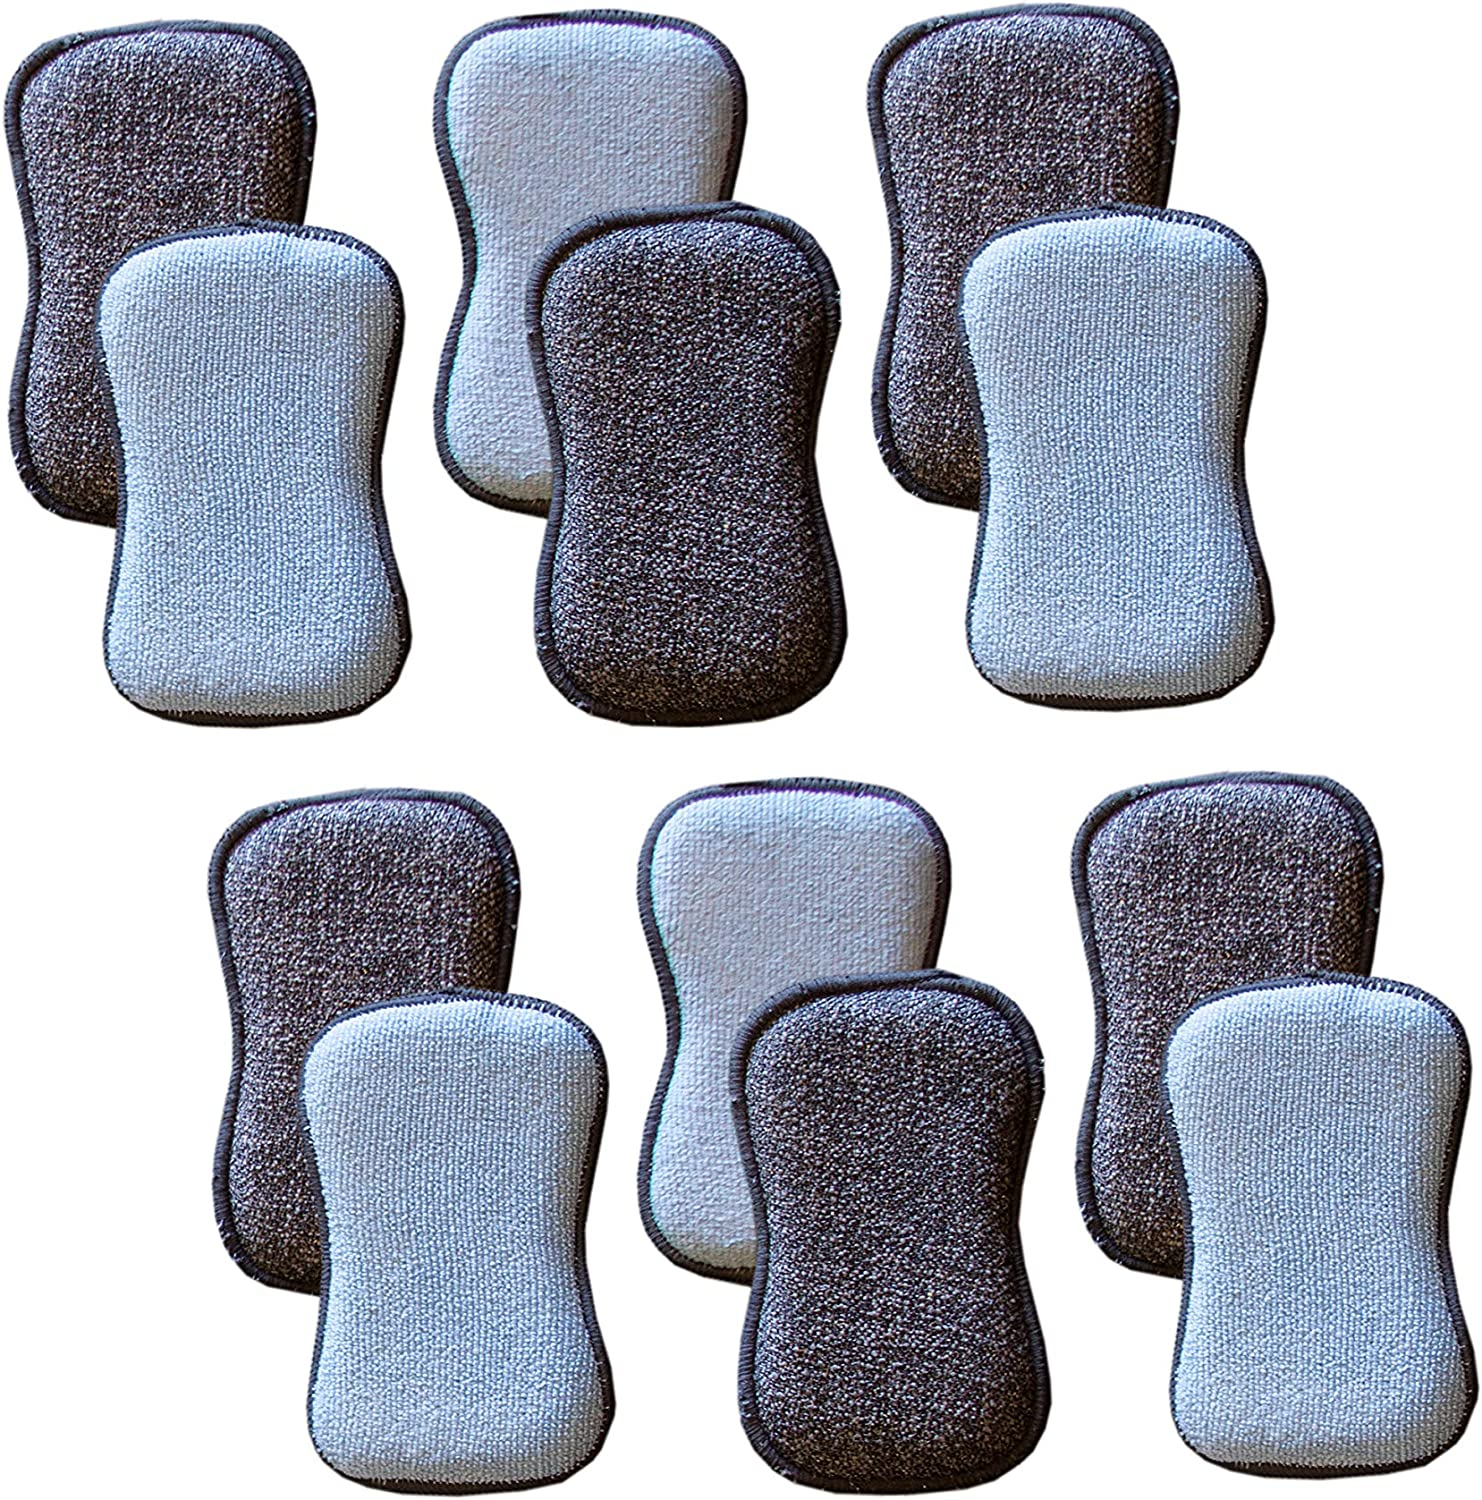 Tuff-Scrub Microfiber Multi Surface Scrub and Wipe Sponges, Dual-Sided for Scouring and Easy Household Cleaning, Machine Washable (Pack-12)